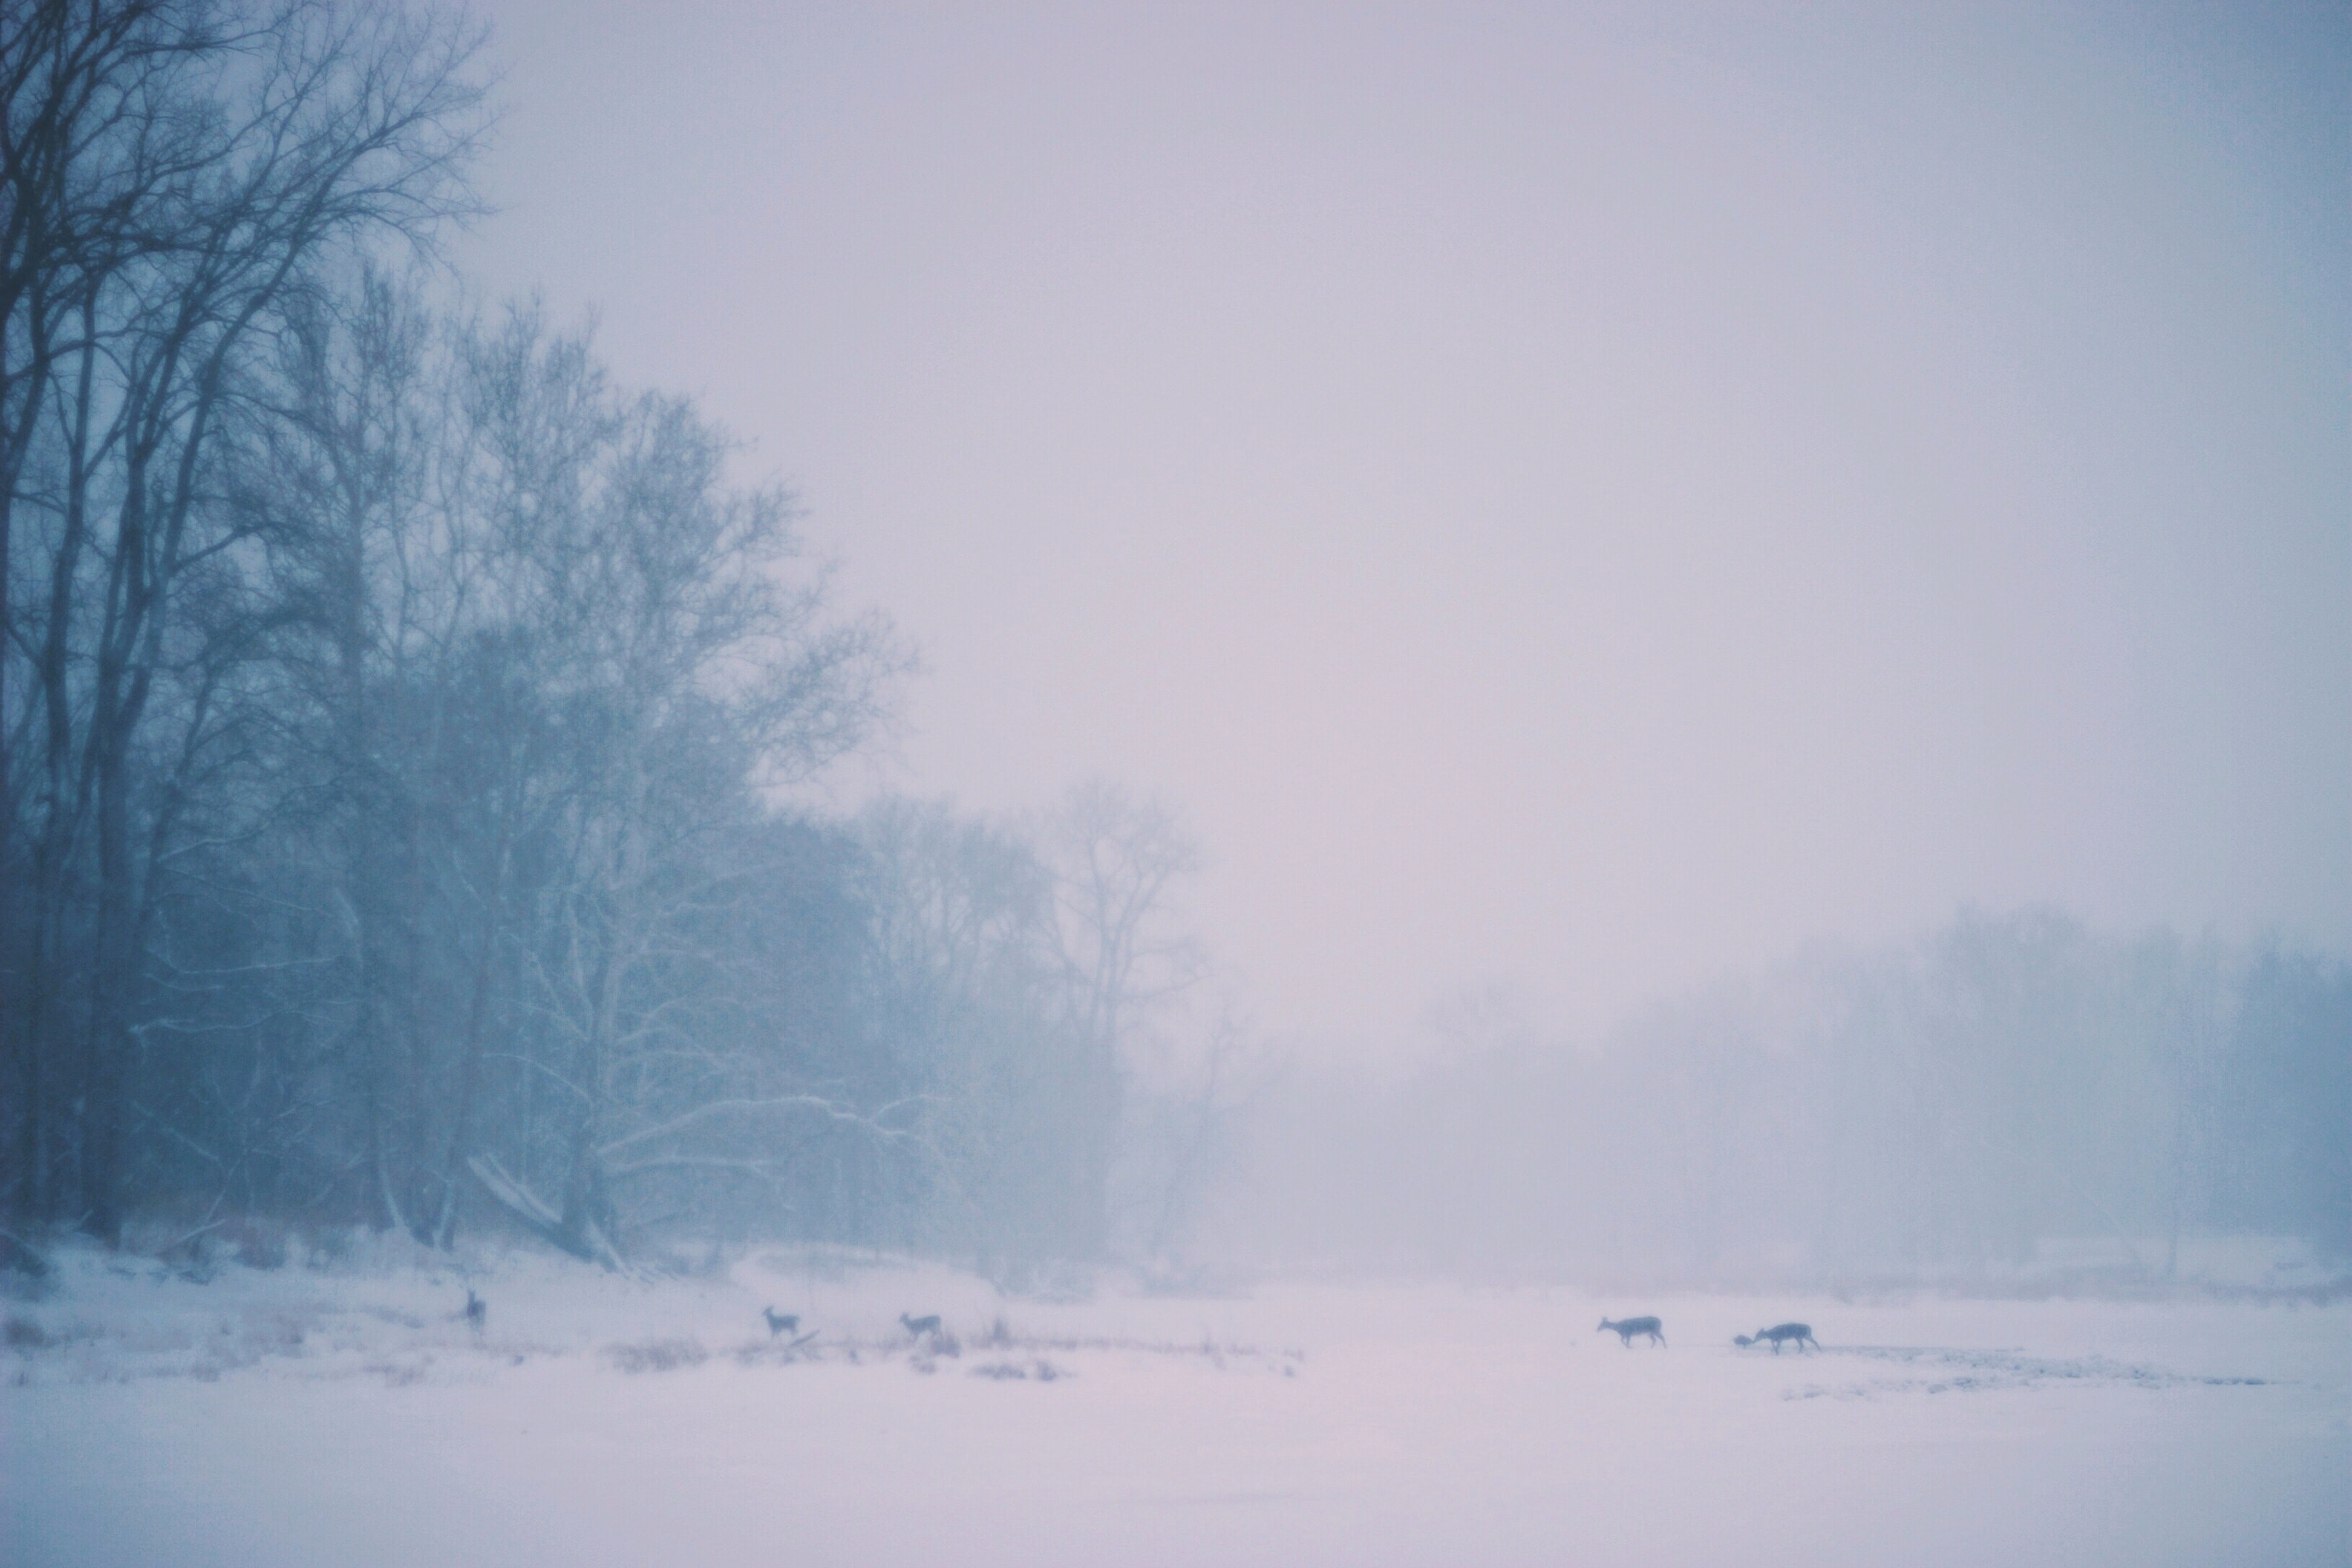 A pale shot of a herd of deers silhouetted against the snow-covered ground